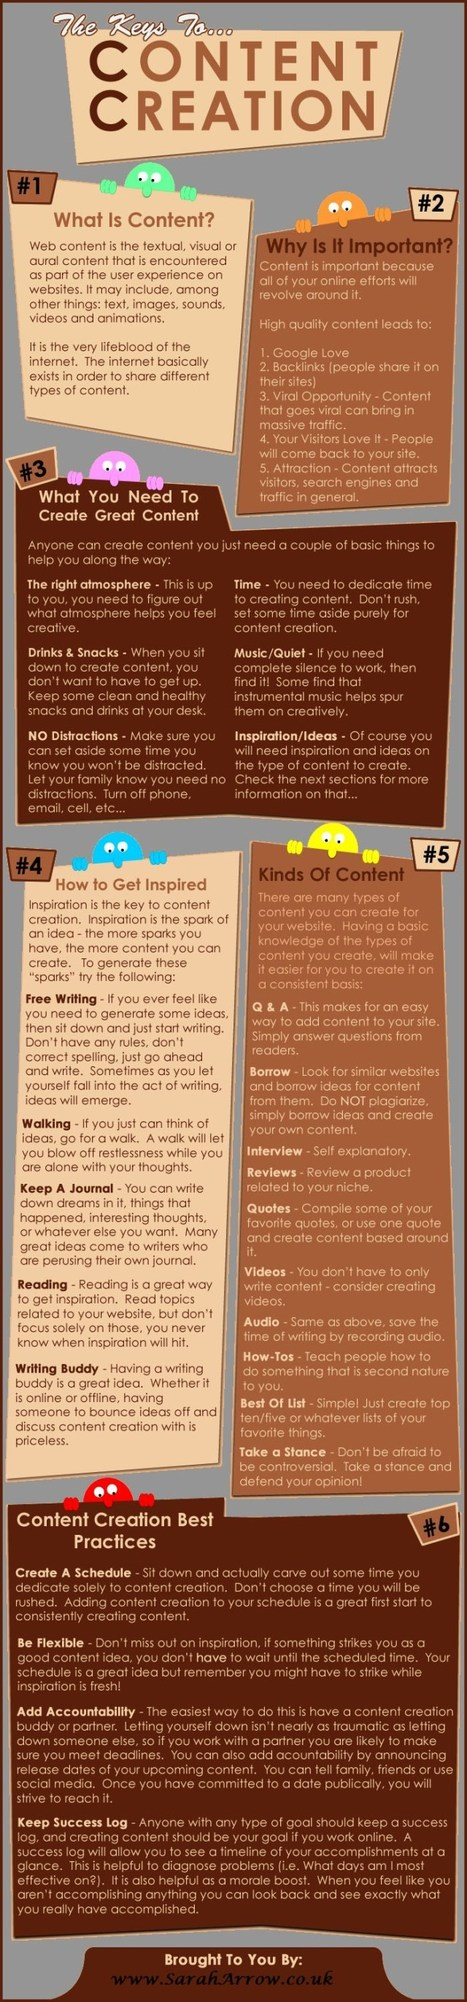 25 Must Follow Tips to Fix Your Failing Content Creation Strategy | infografias - infographics | Scoop.it